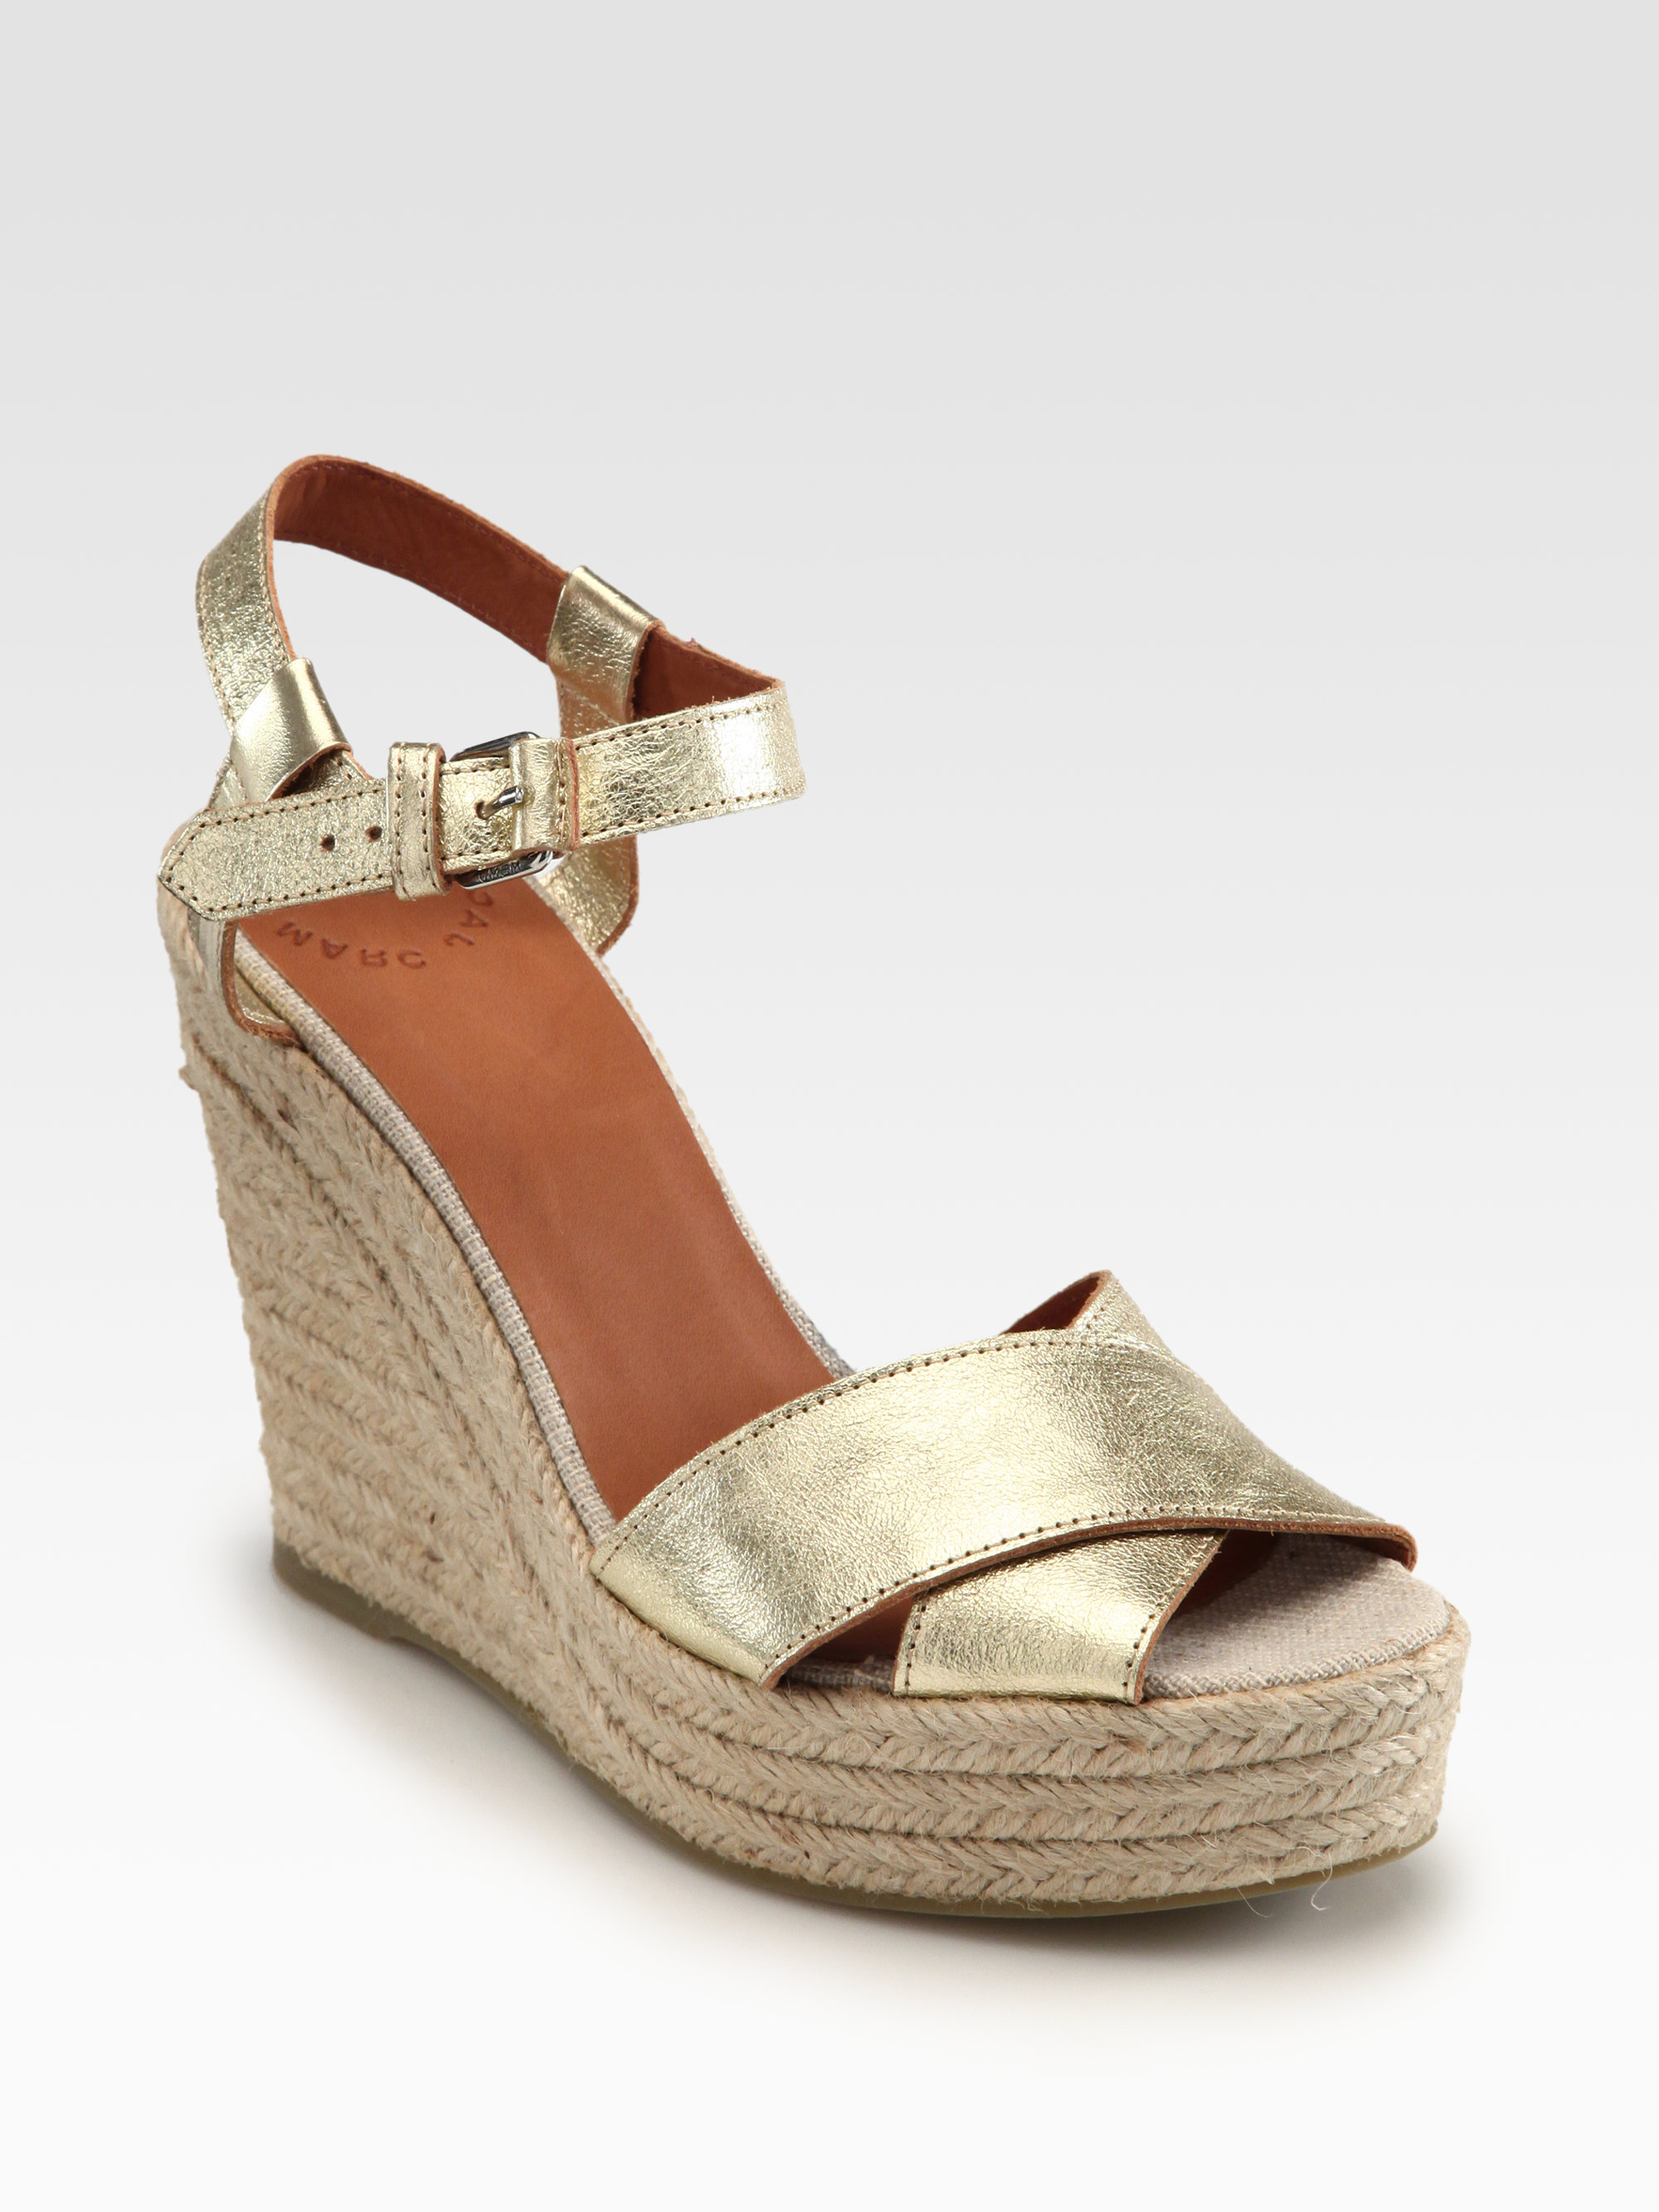 Marc By Marc Jacobs Metallic Leather Crisscross Espadrille